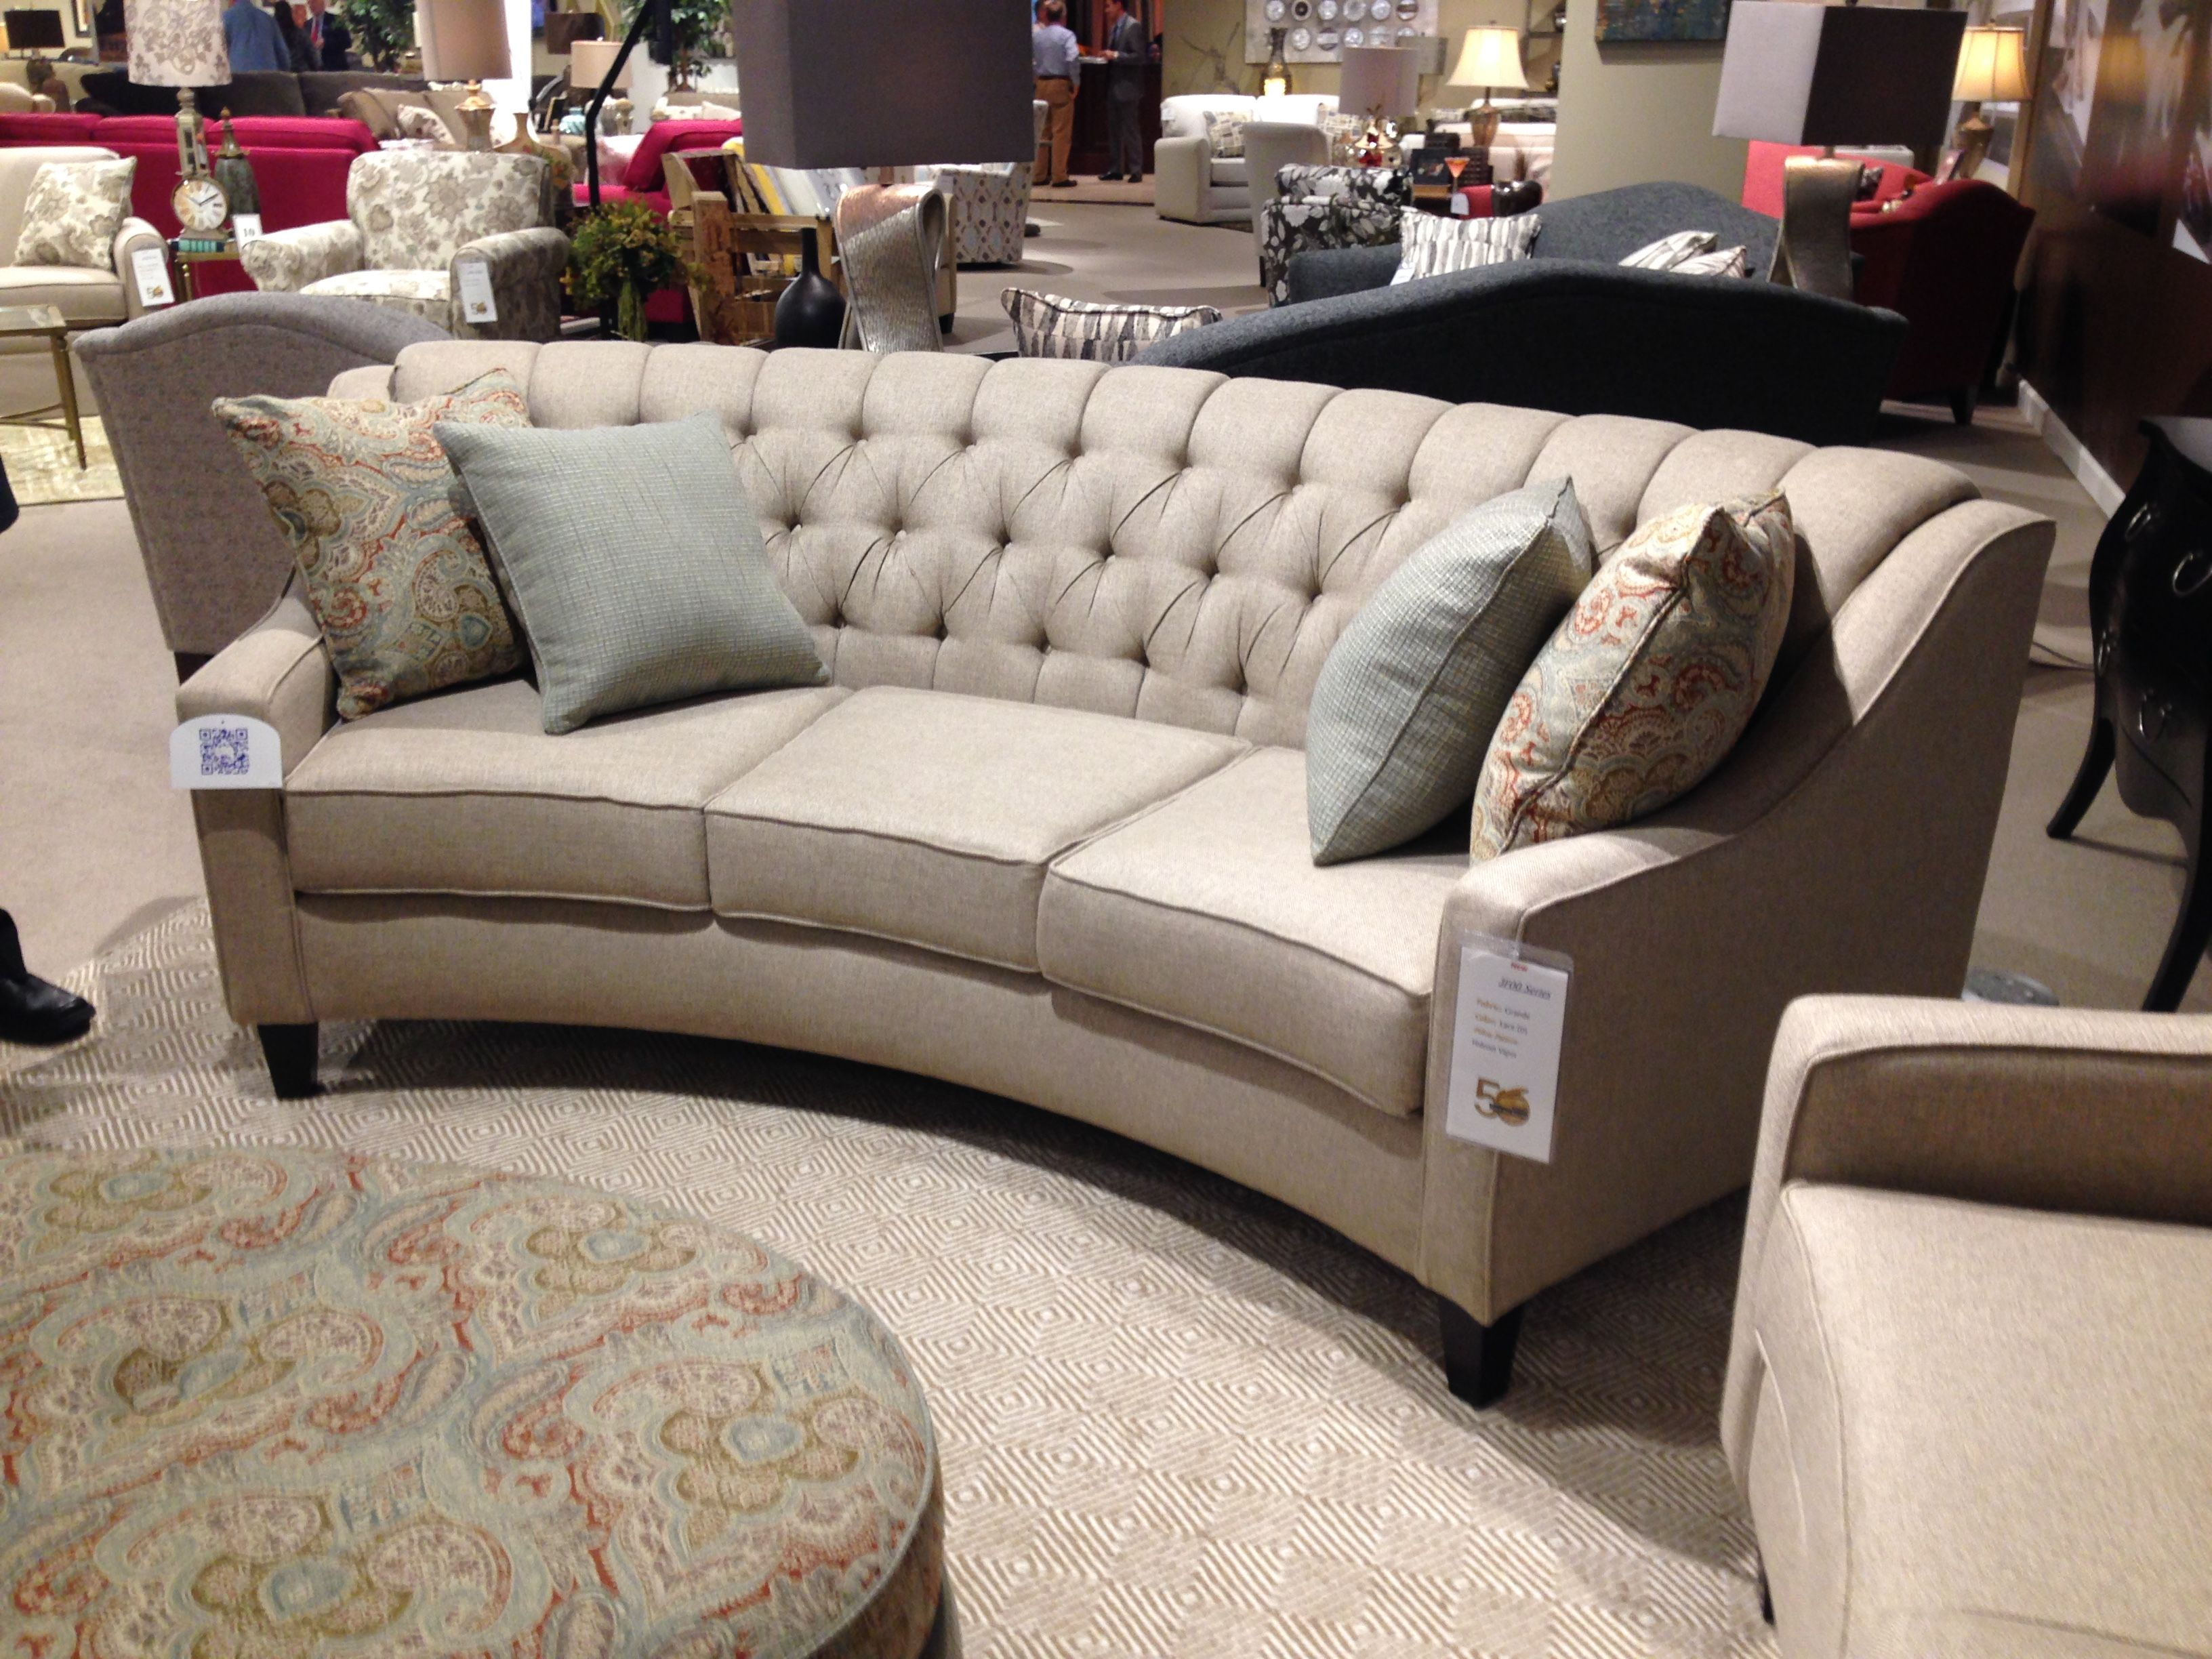 New curved sofa from England Furniture es in 3 sizes